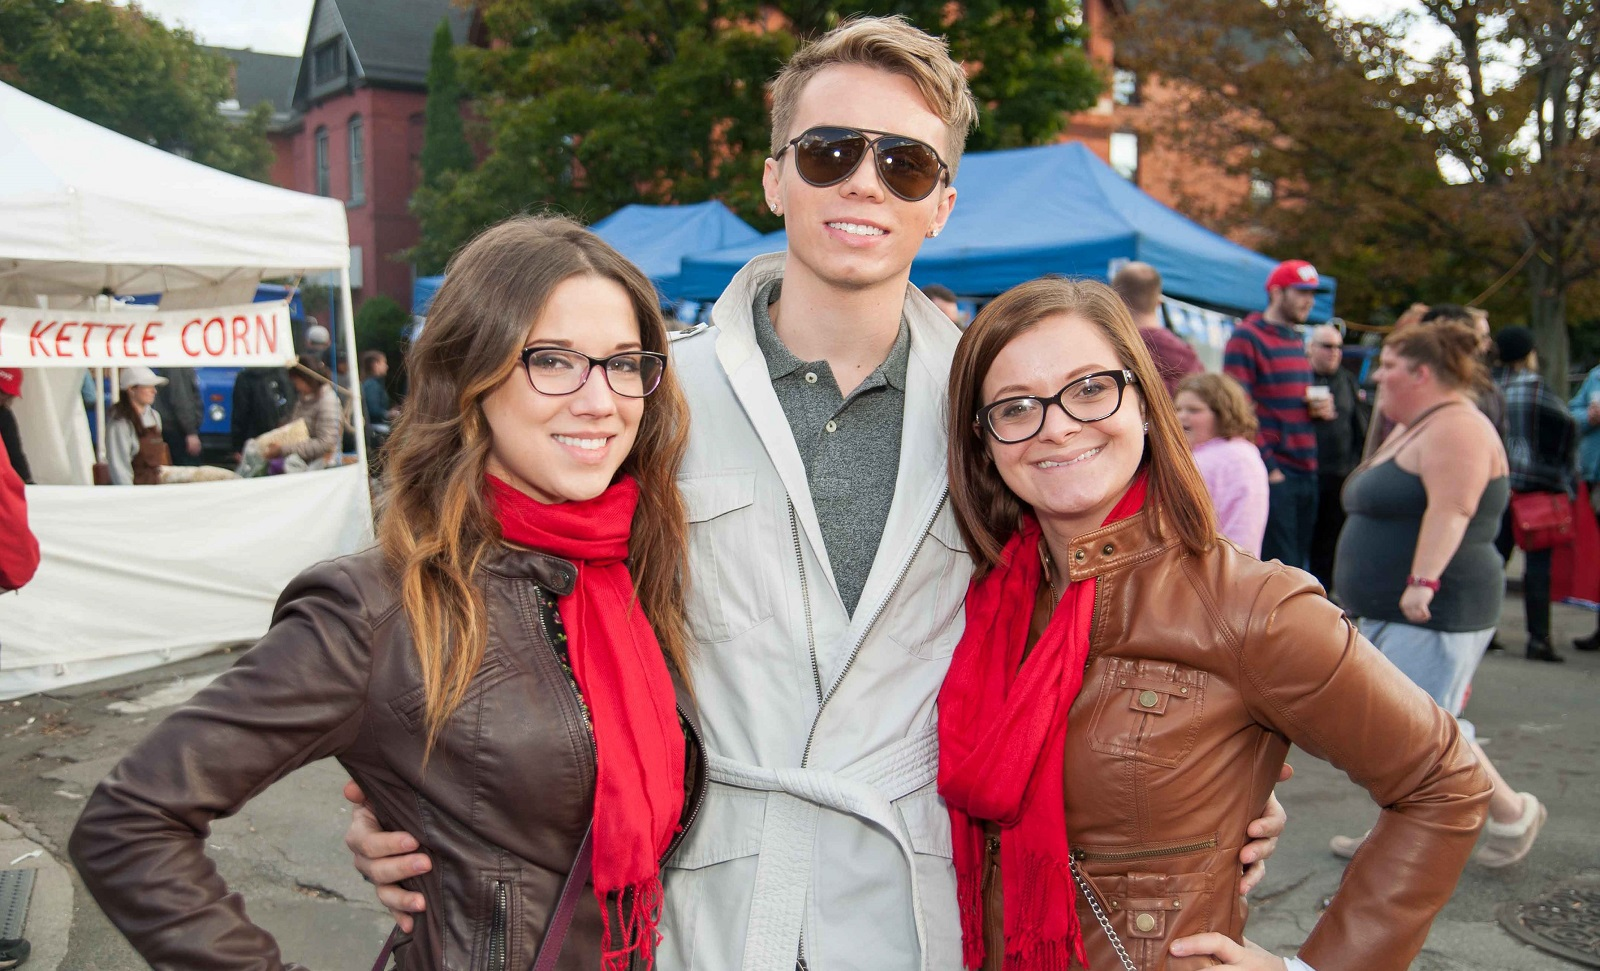 Smiling faces at the Allentown Fall Festival from 2014. (Matt Weinberg/Special to The News)